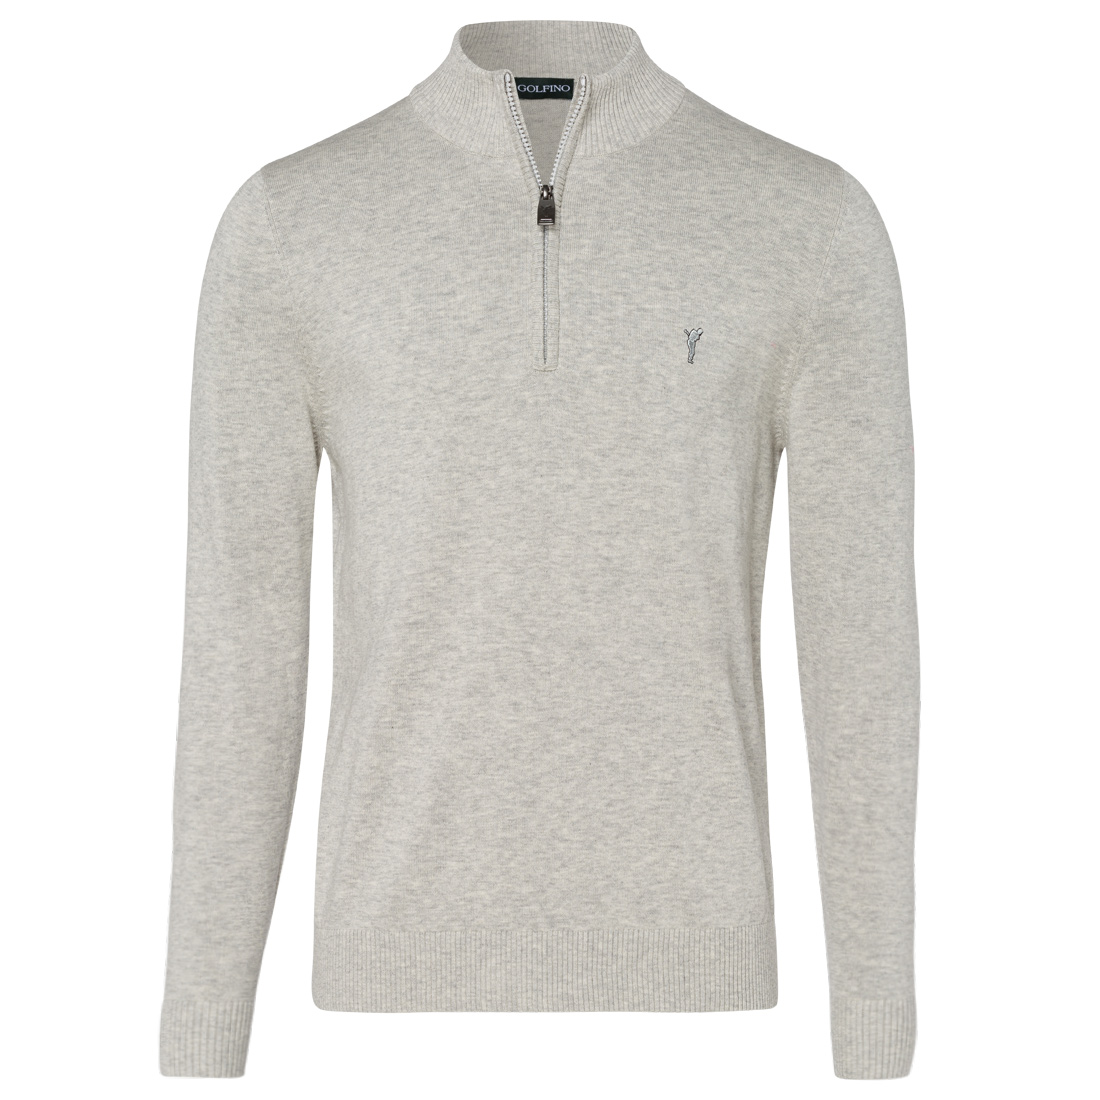 Men's knitted half-zip